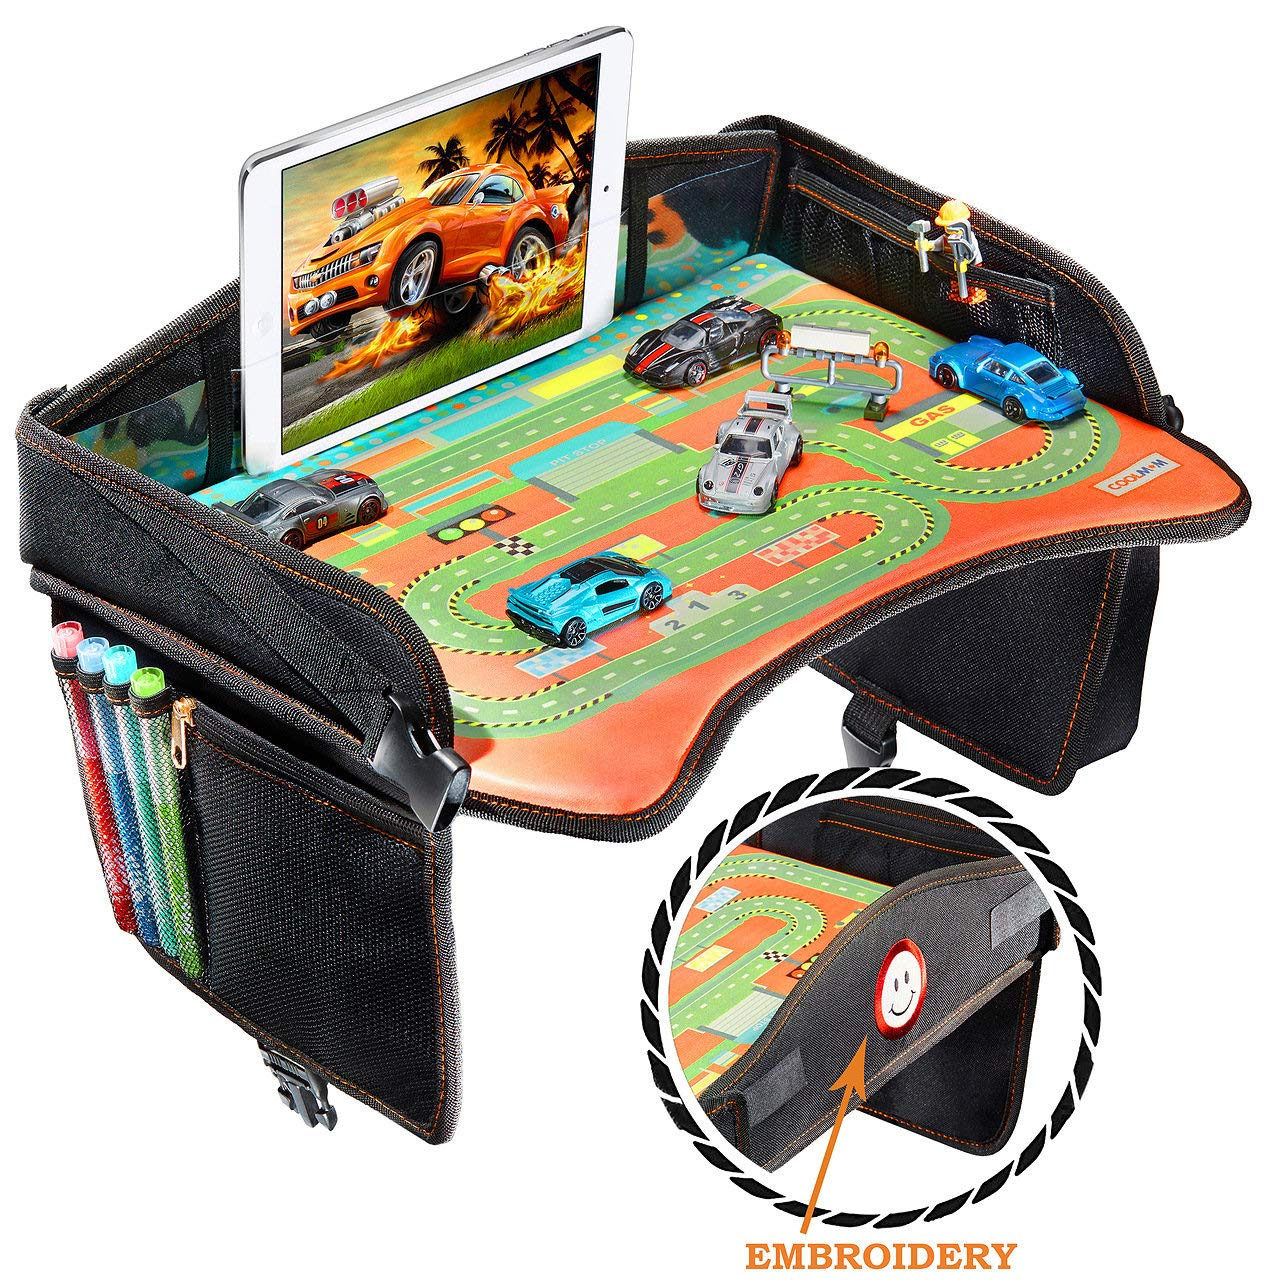 Premium Black Travel Tray – Ideal as Kids Travel Tray – Toddler Travel Tray & Baby Stroller Tray – Travel Activity Tray & Play Tray – Baby Snack Tray & Kid's Car Seat Tray - Play Table Home Innovations group